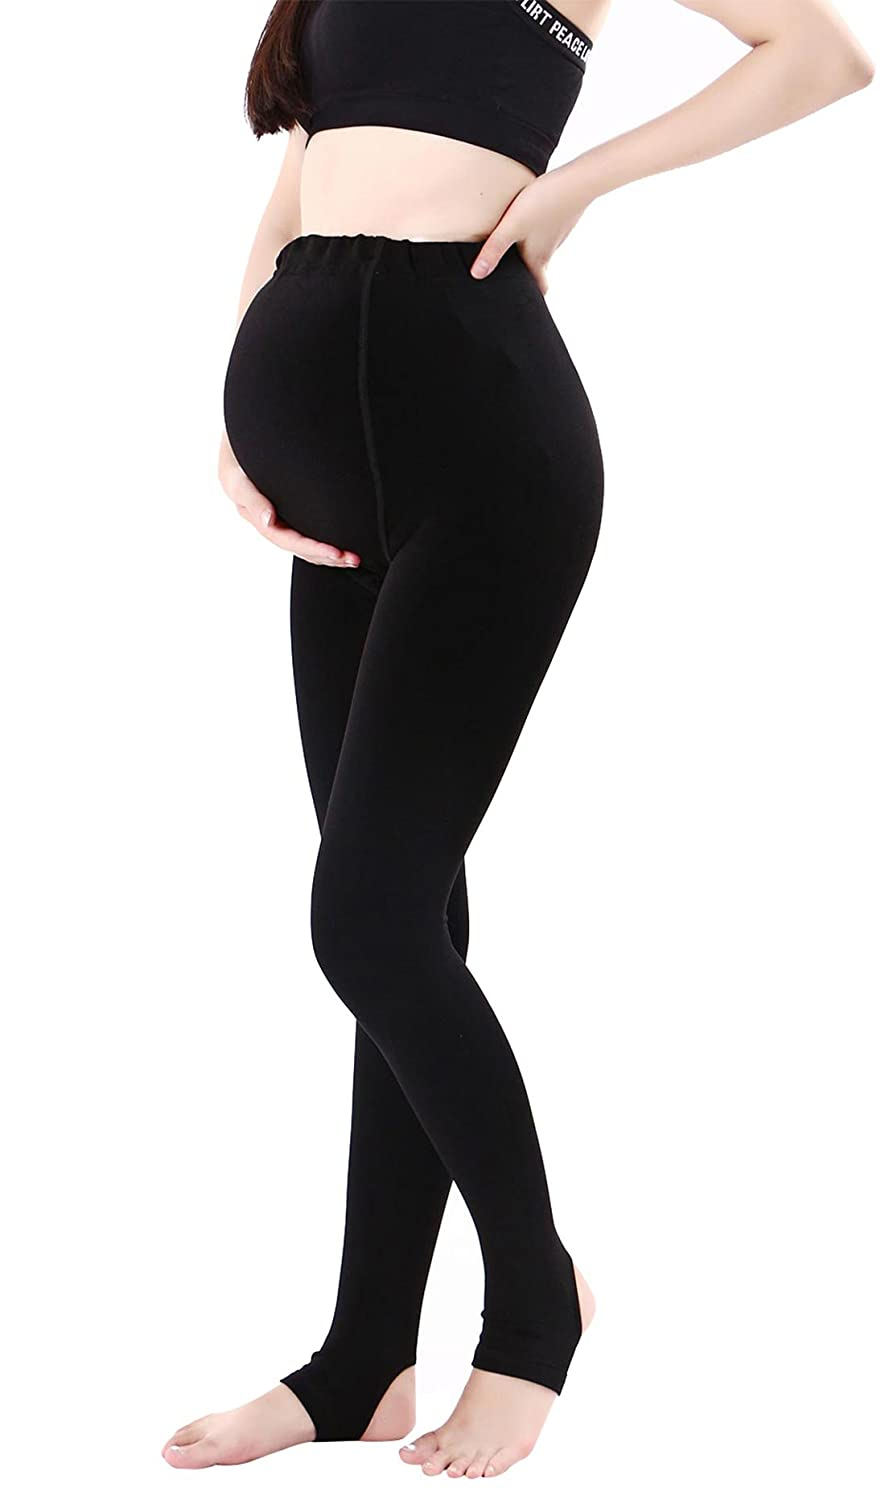 Canwen Klaen Winter's Maternity Leggings Belly Support Soft Strechable Stockings